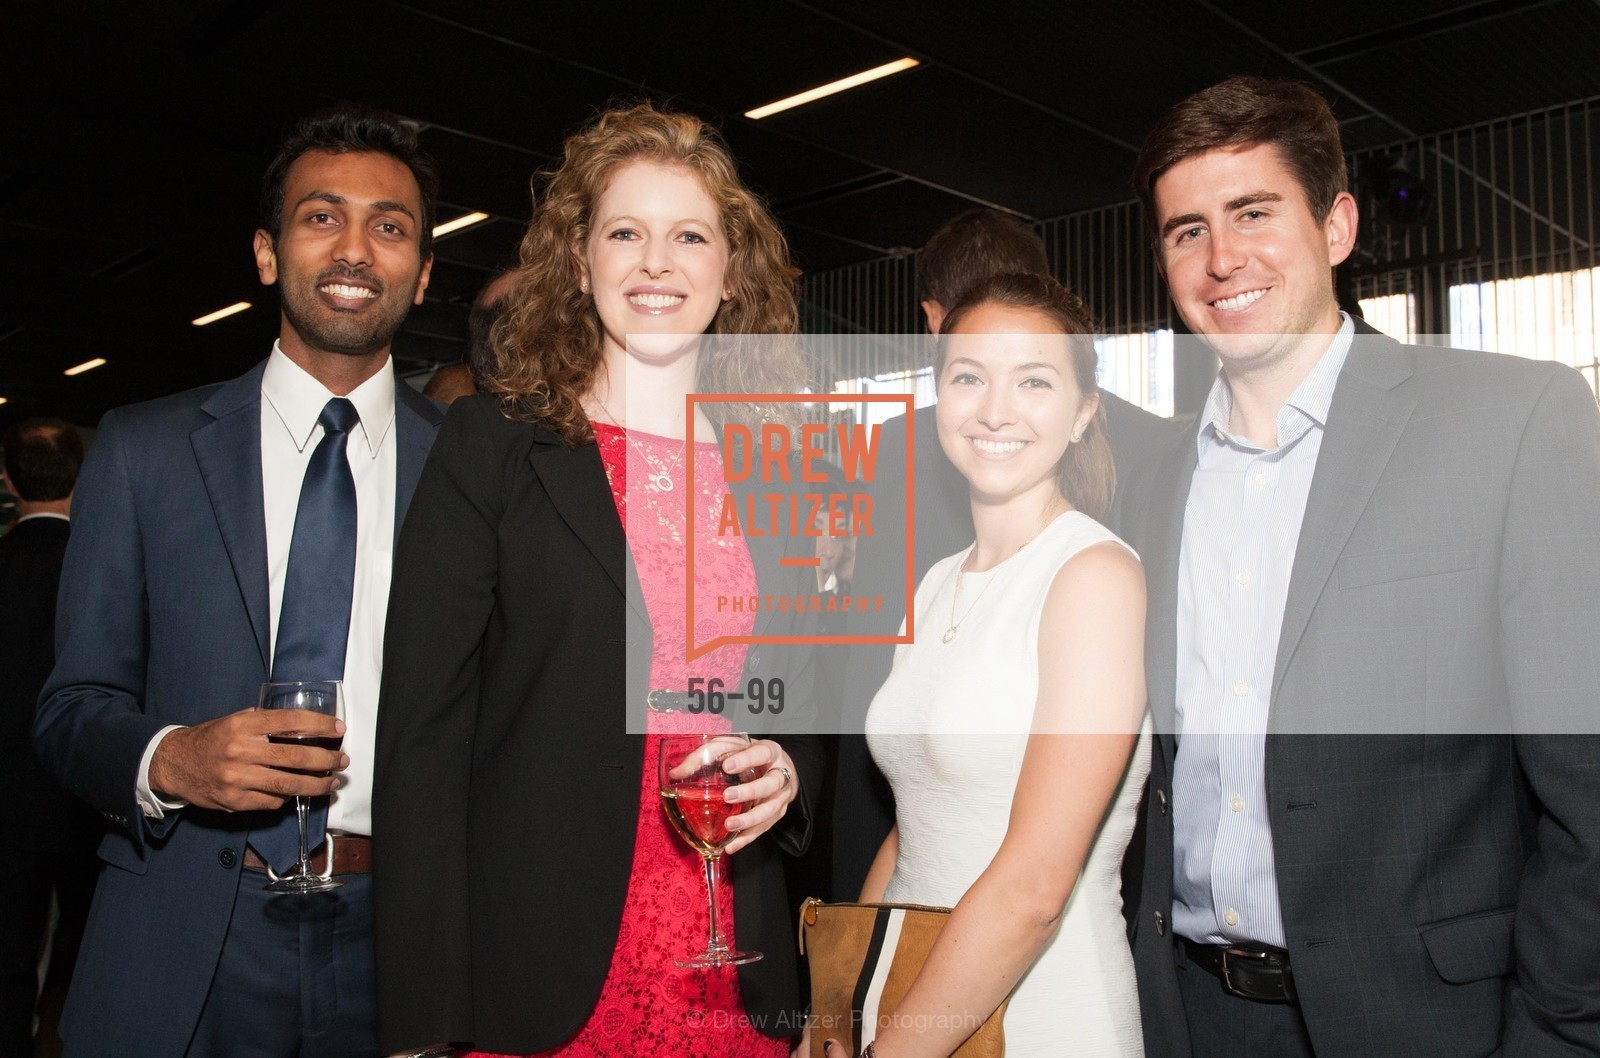 Sachin Jane, Rachel Steyer, Michelle Steyer, David Carr, Common Sense Media Awards 2015, SF Jazz. 201 Franklin St, May 13th, 2015,Drew Altizer, Drew Altizer Photography, full-service event agency, private events, San Francisco photographer, photographer California